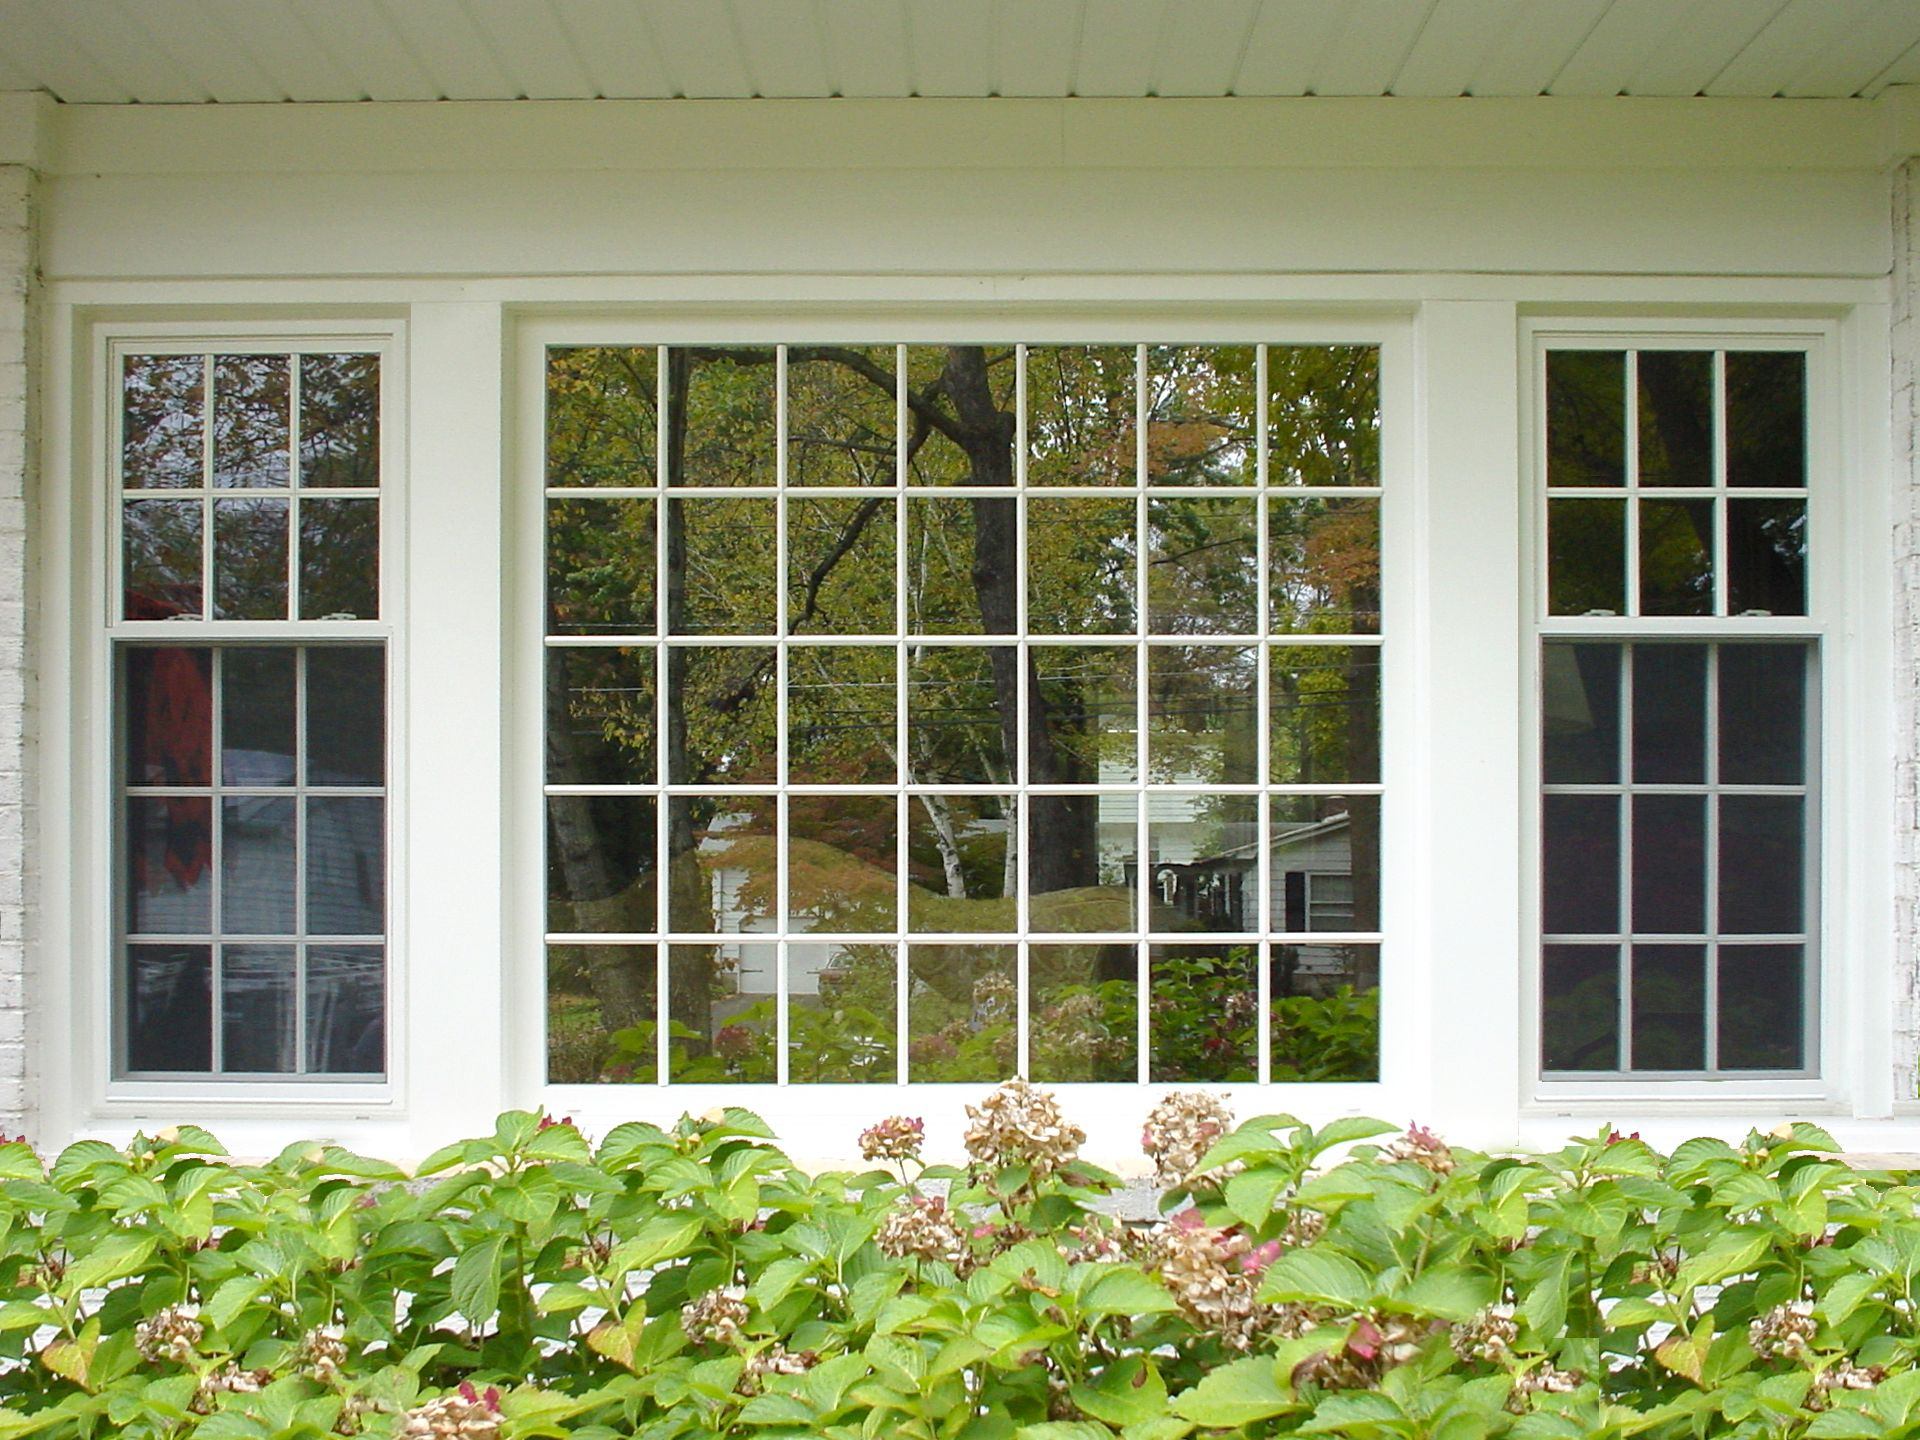 25 window design ideas 2jpg outside window designs - Window Design Ideas